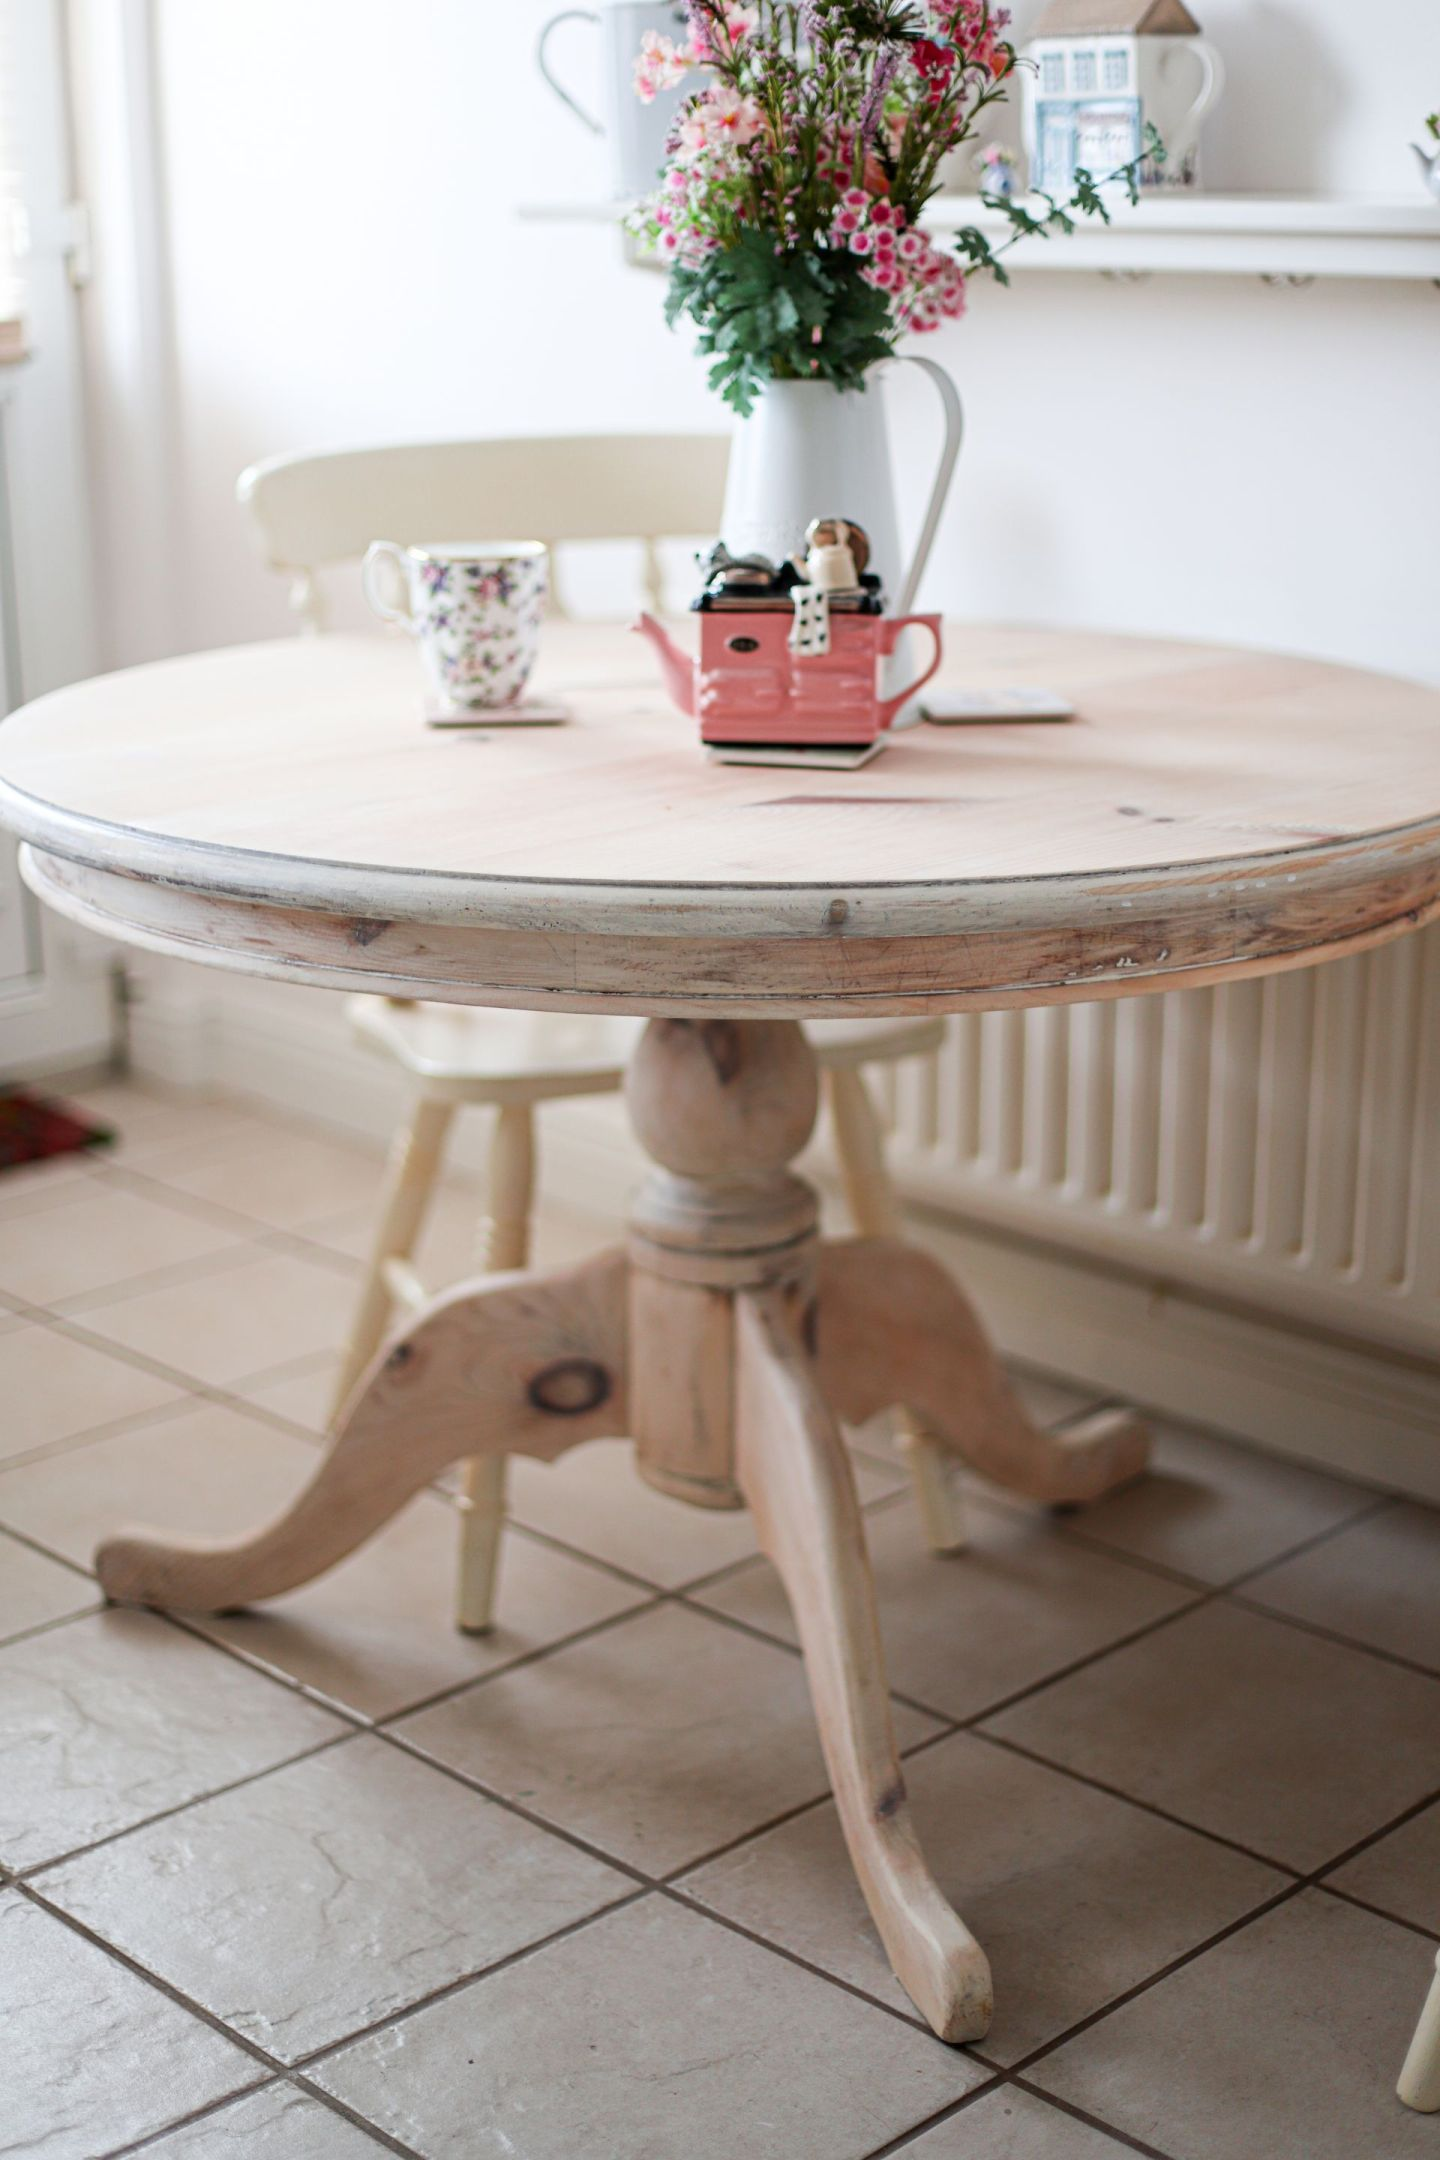 Whitewashed farmhouse kitchen table